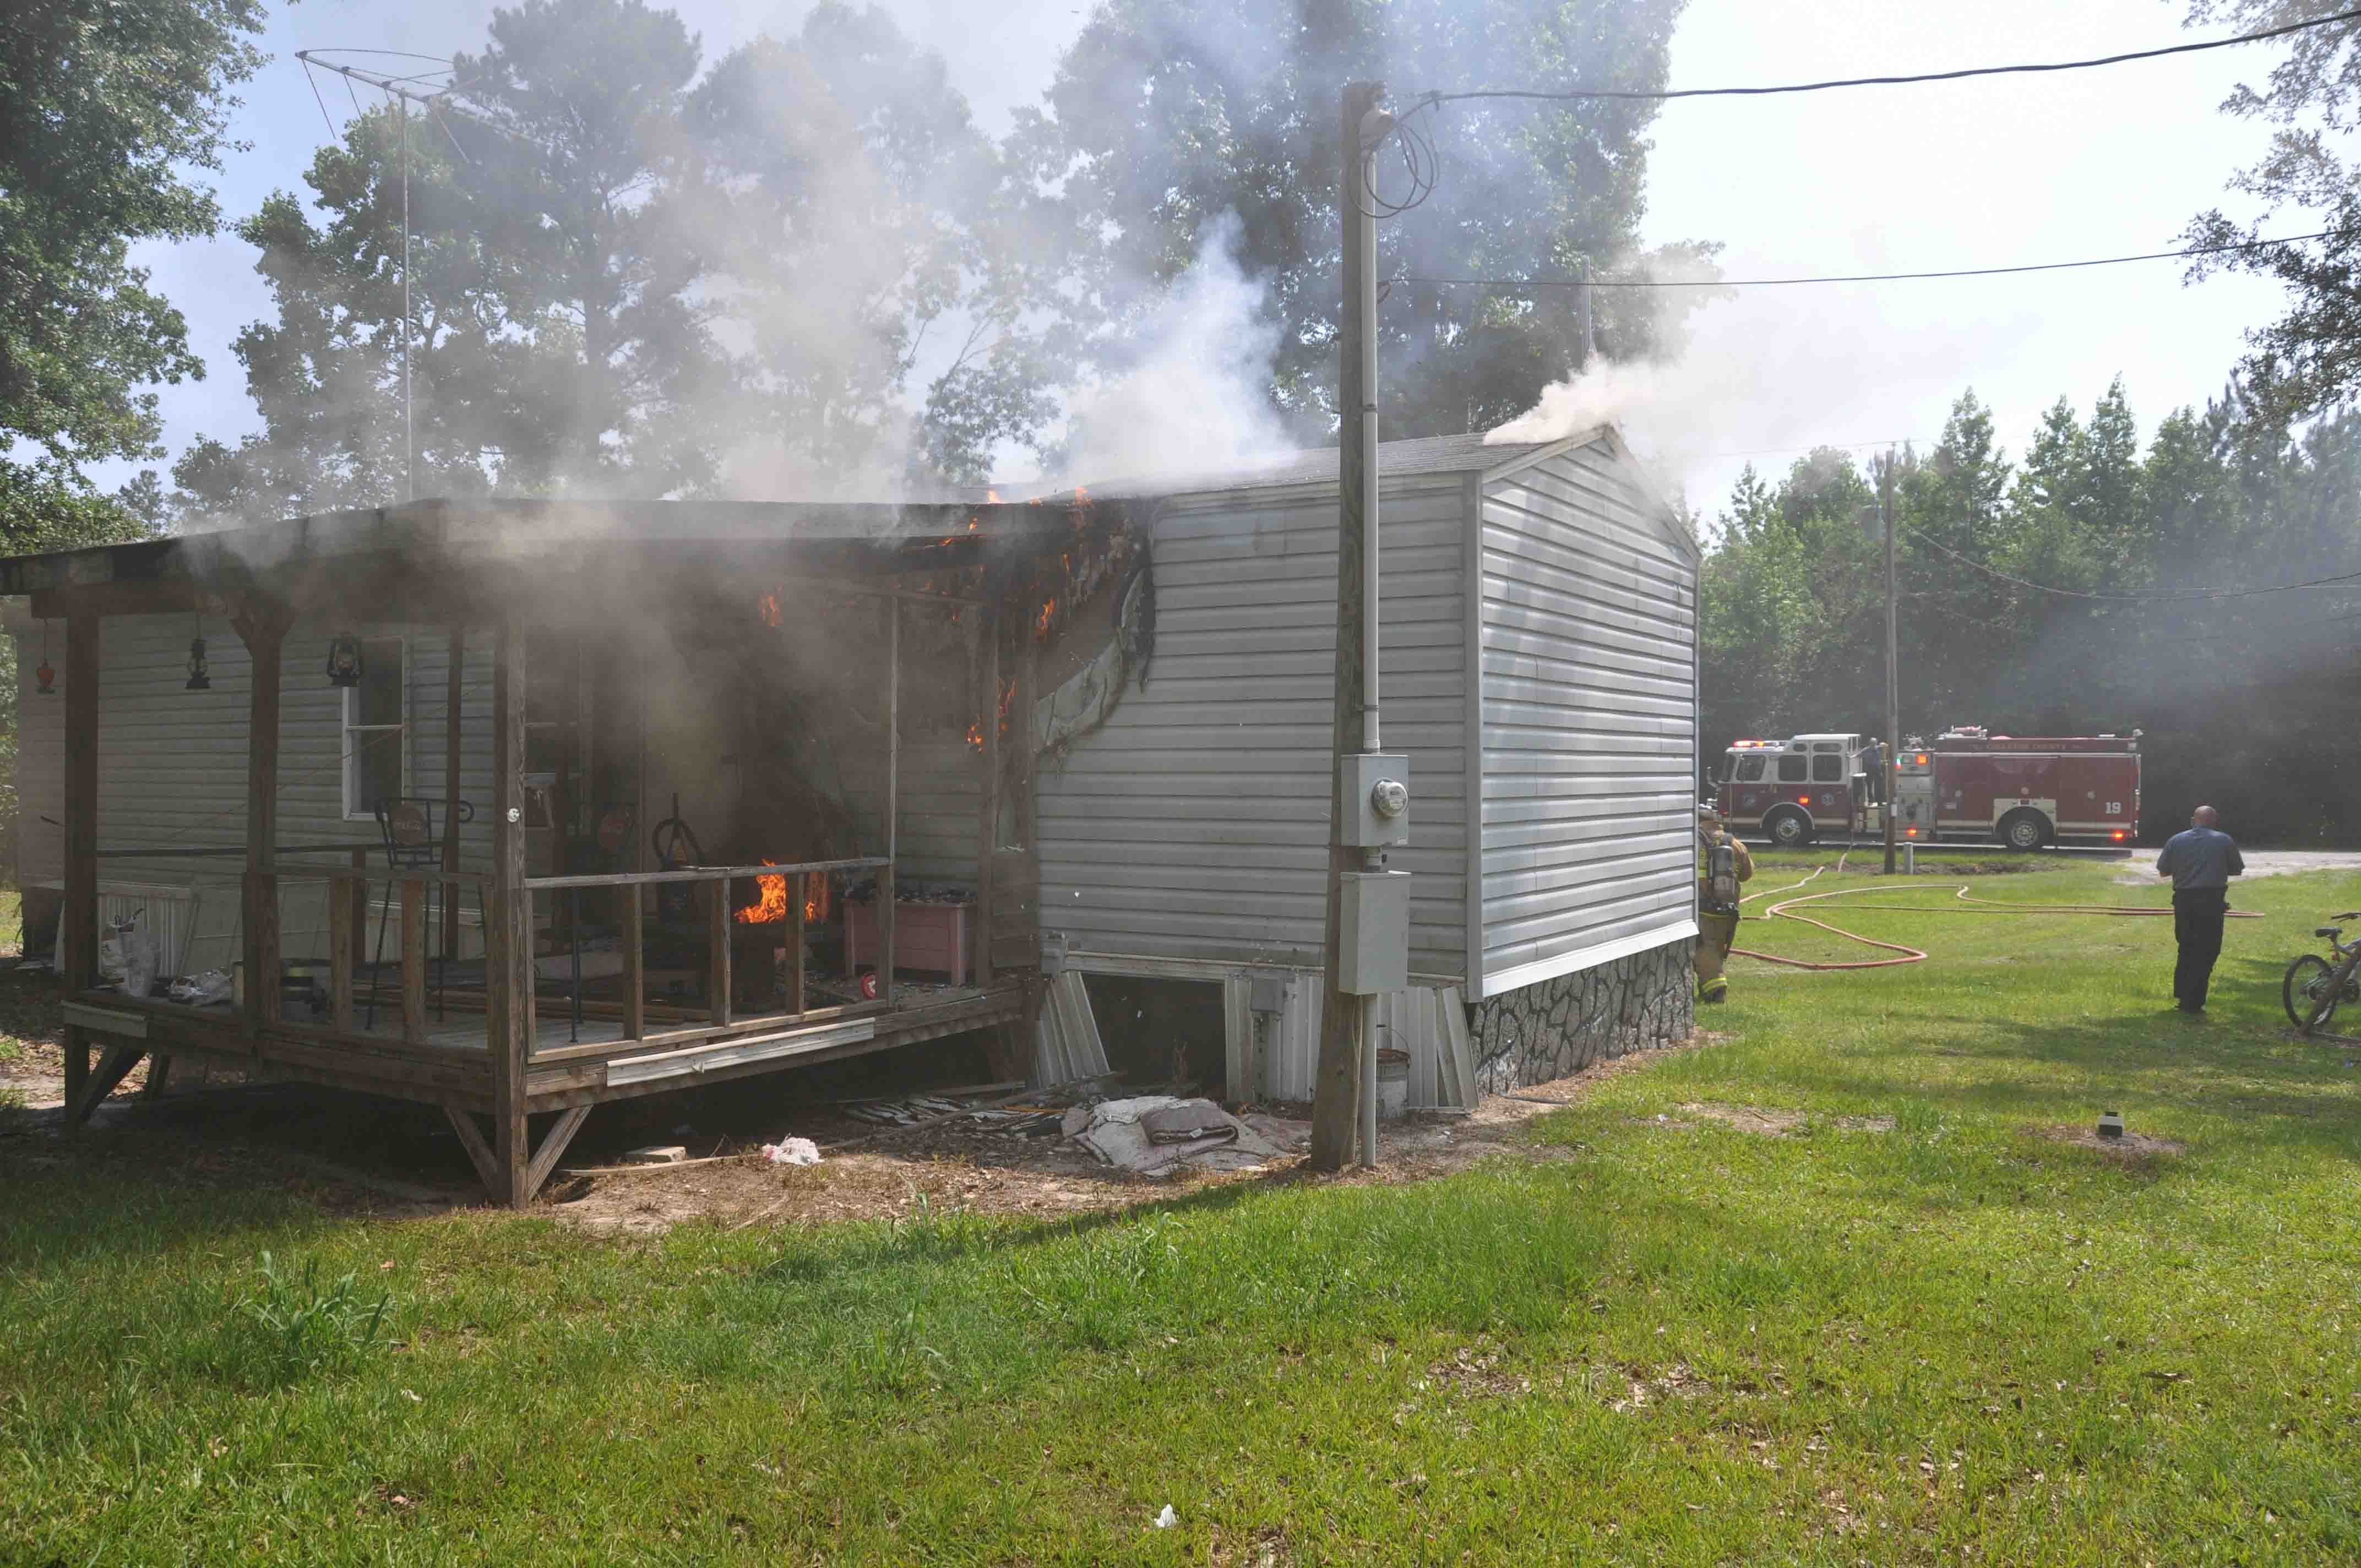 colletonfire.com